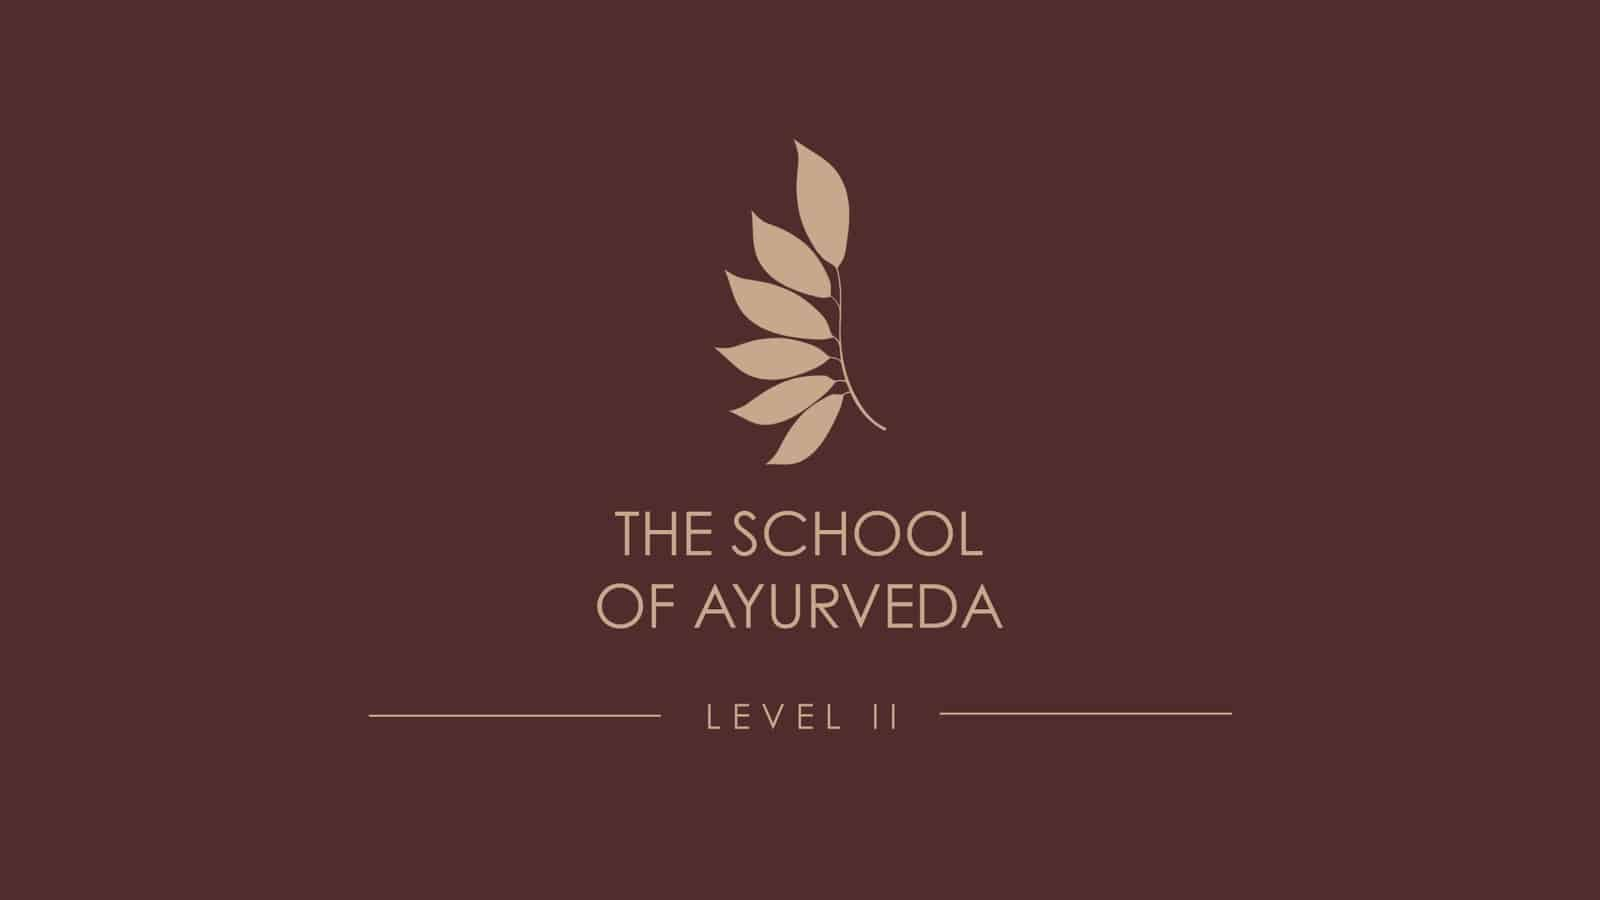 The School of Ayurveda Level II